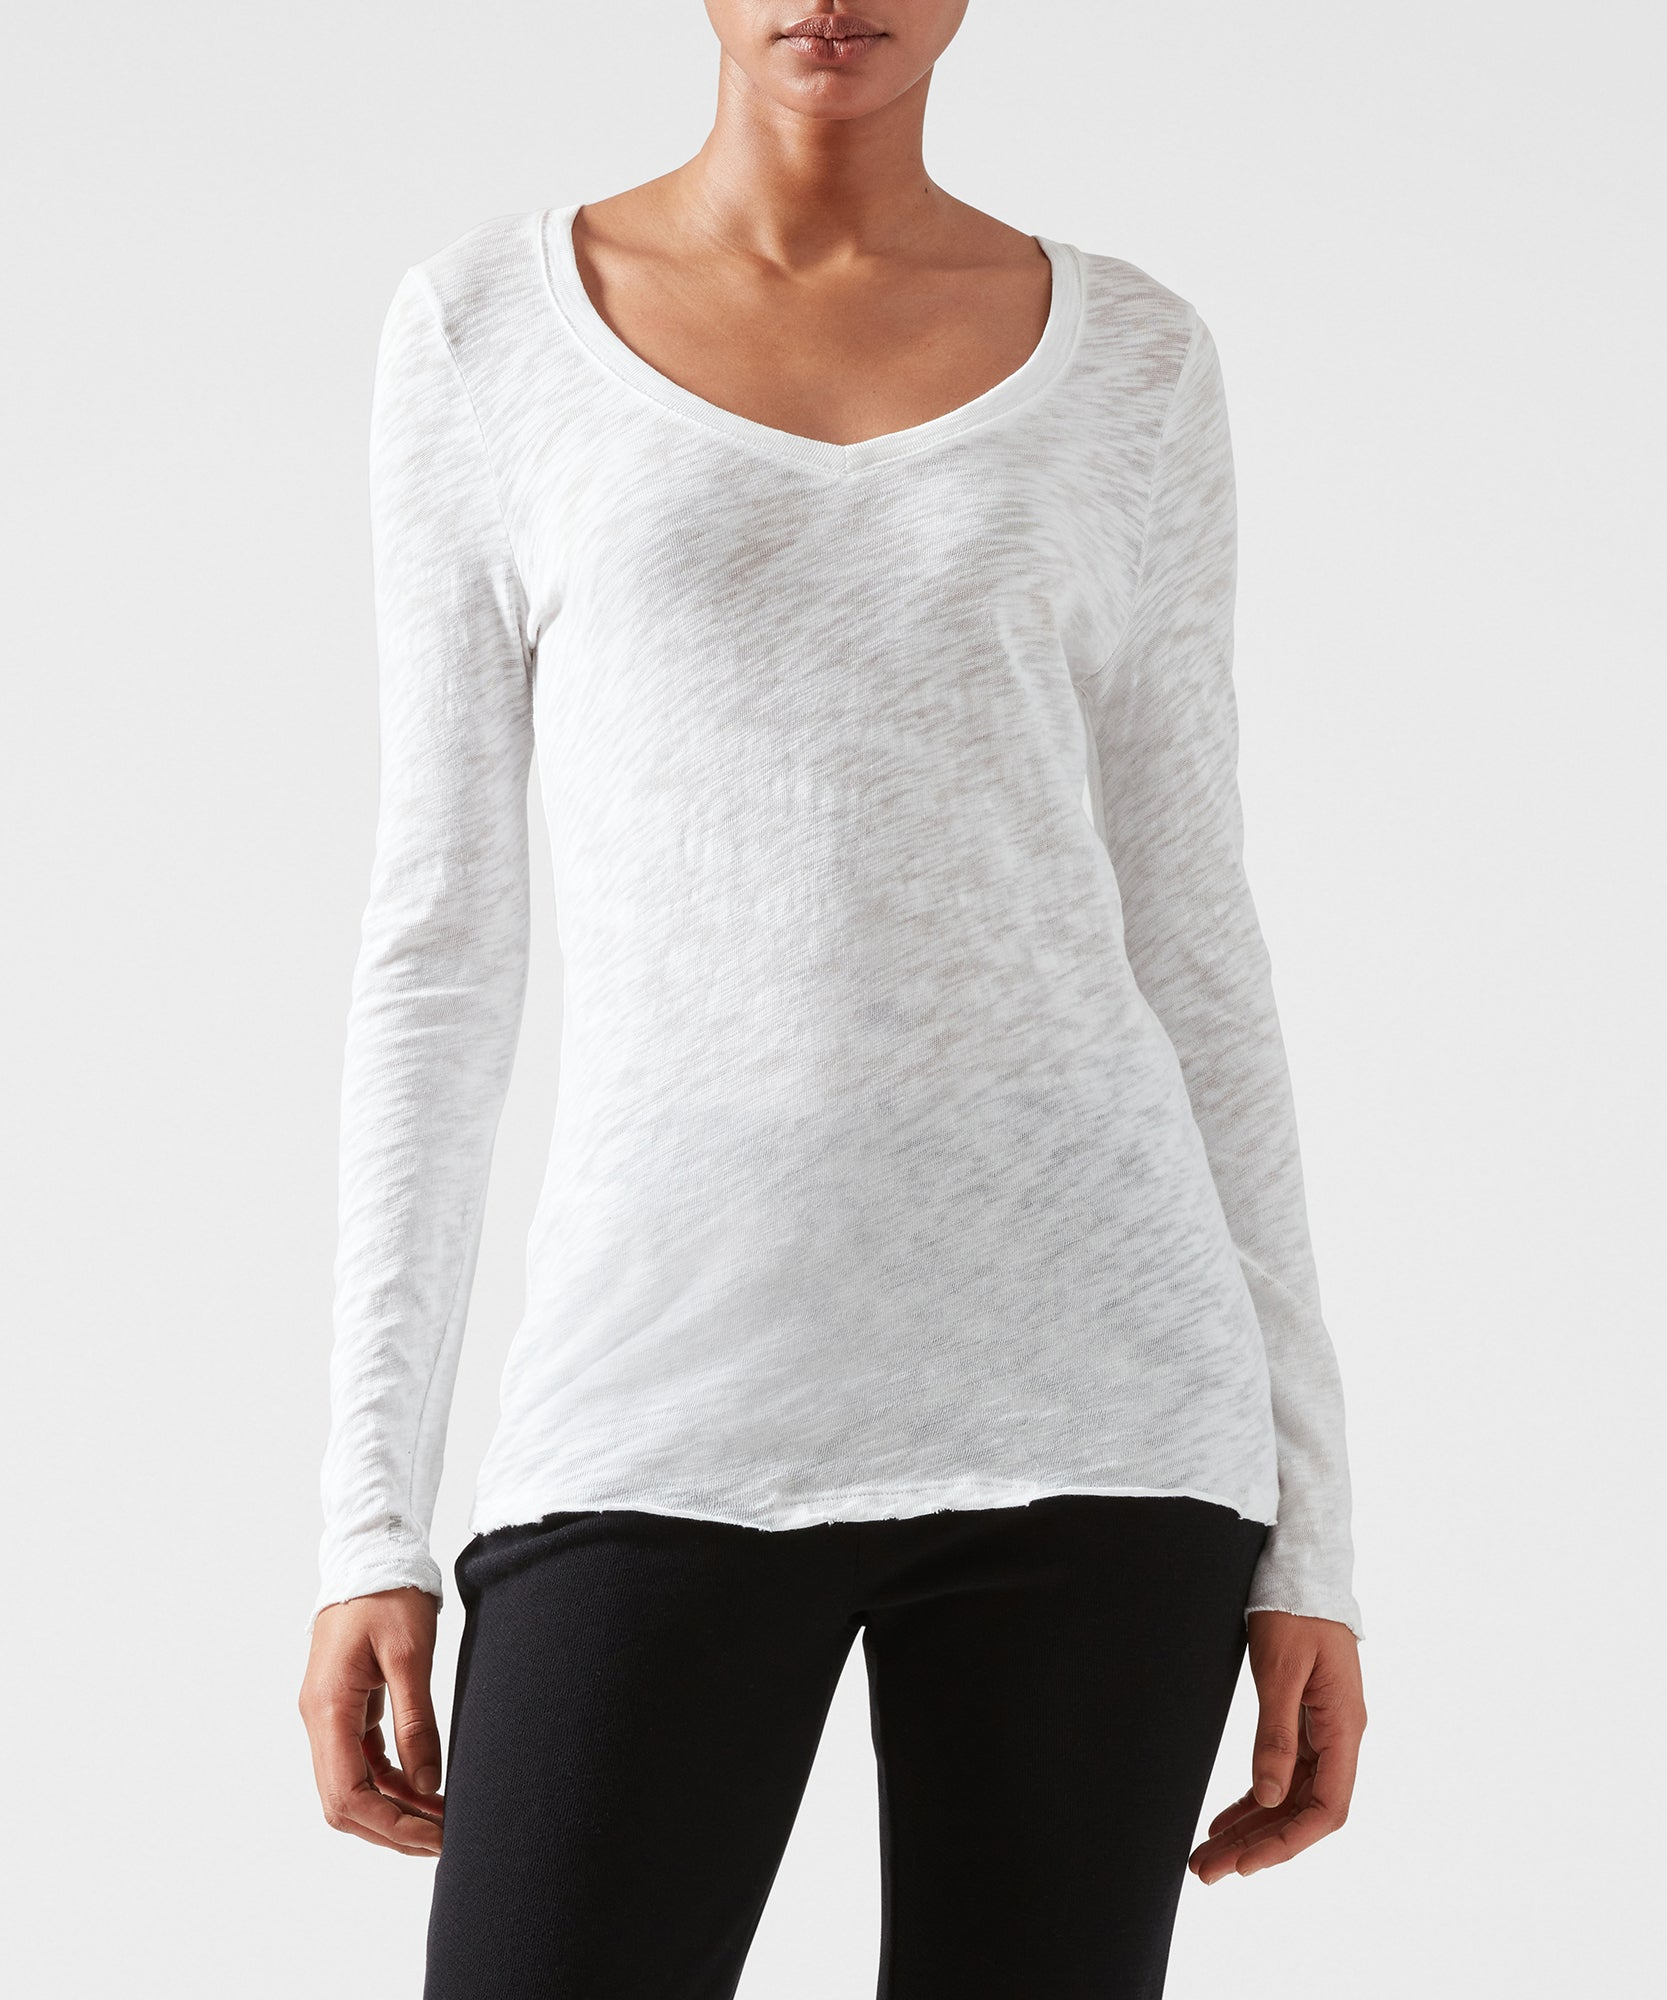 White Slub Jersey Long Sleeve V-Neck Tee - Women's Cotton Long Sleeve Tee ATM Anthony Thomas Melillo